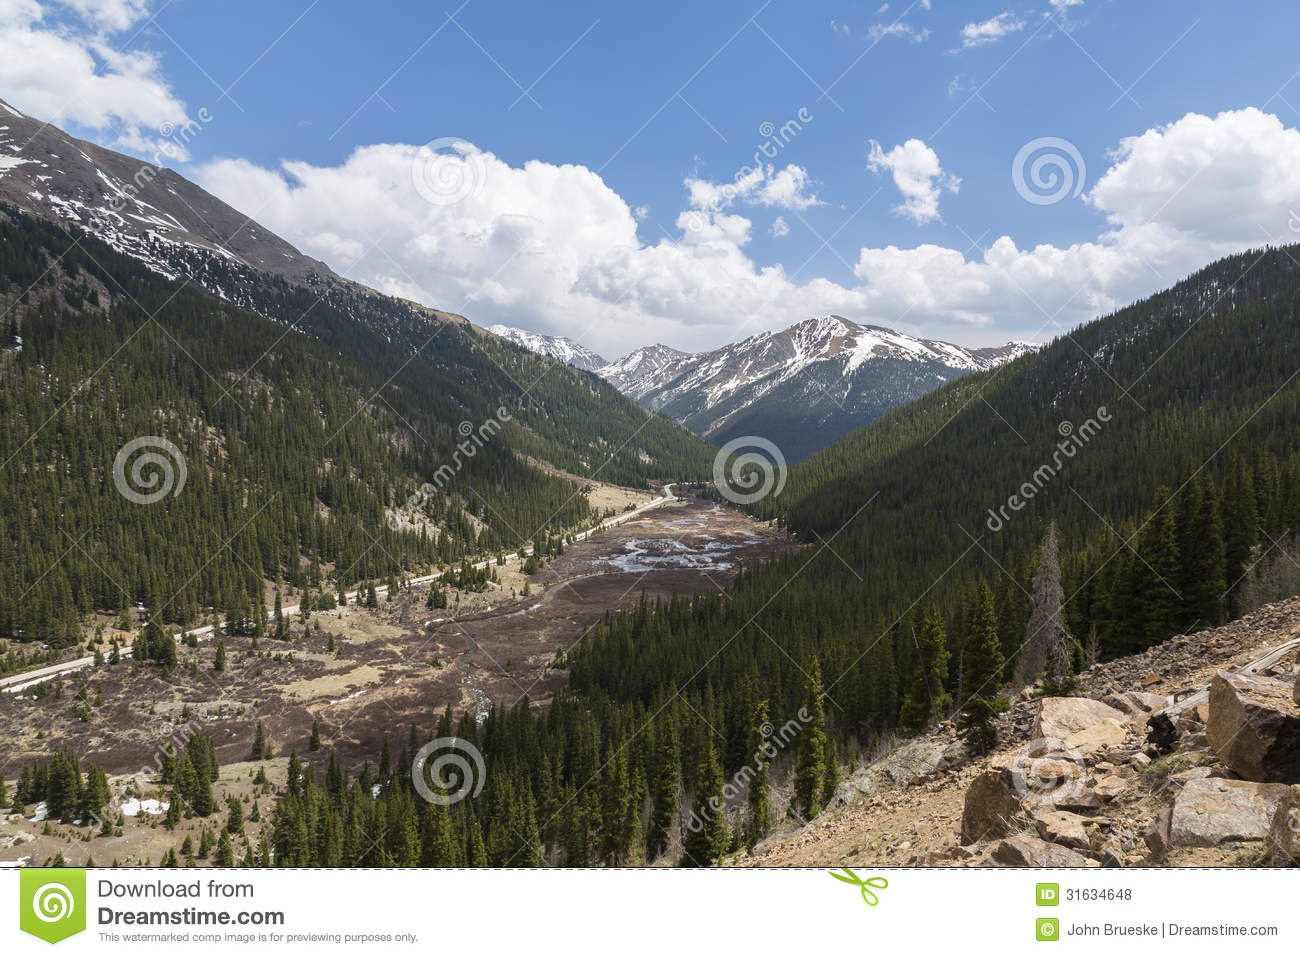 Independence Pass Scenic